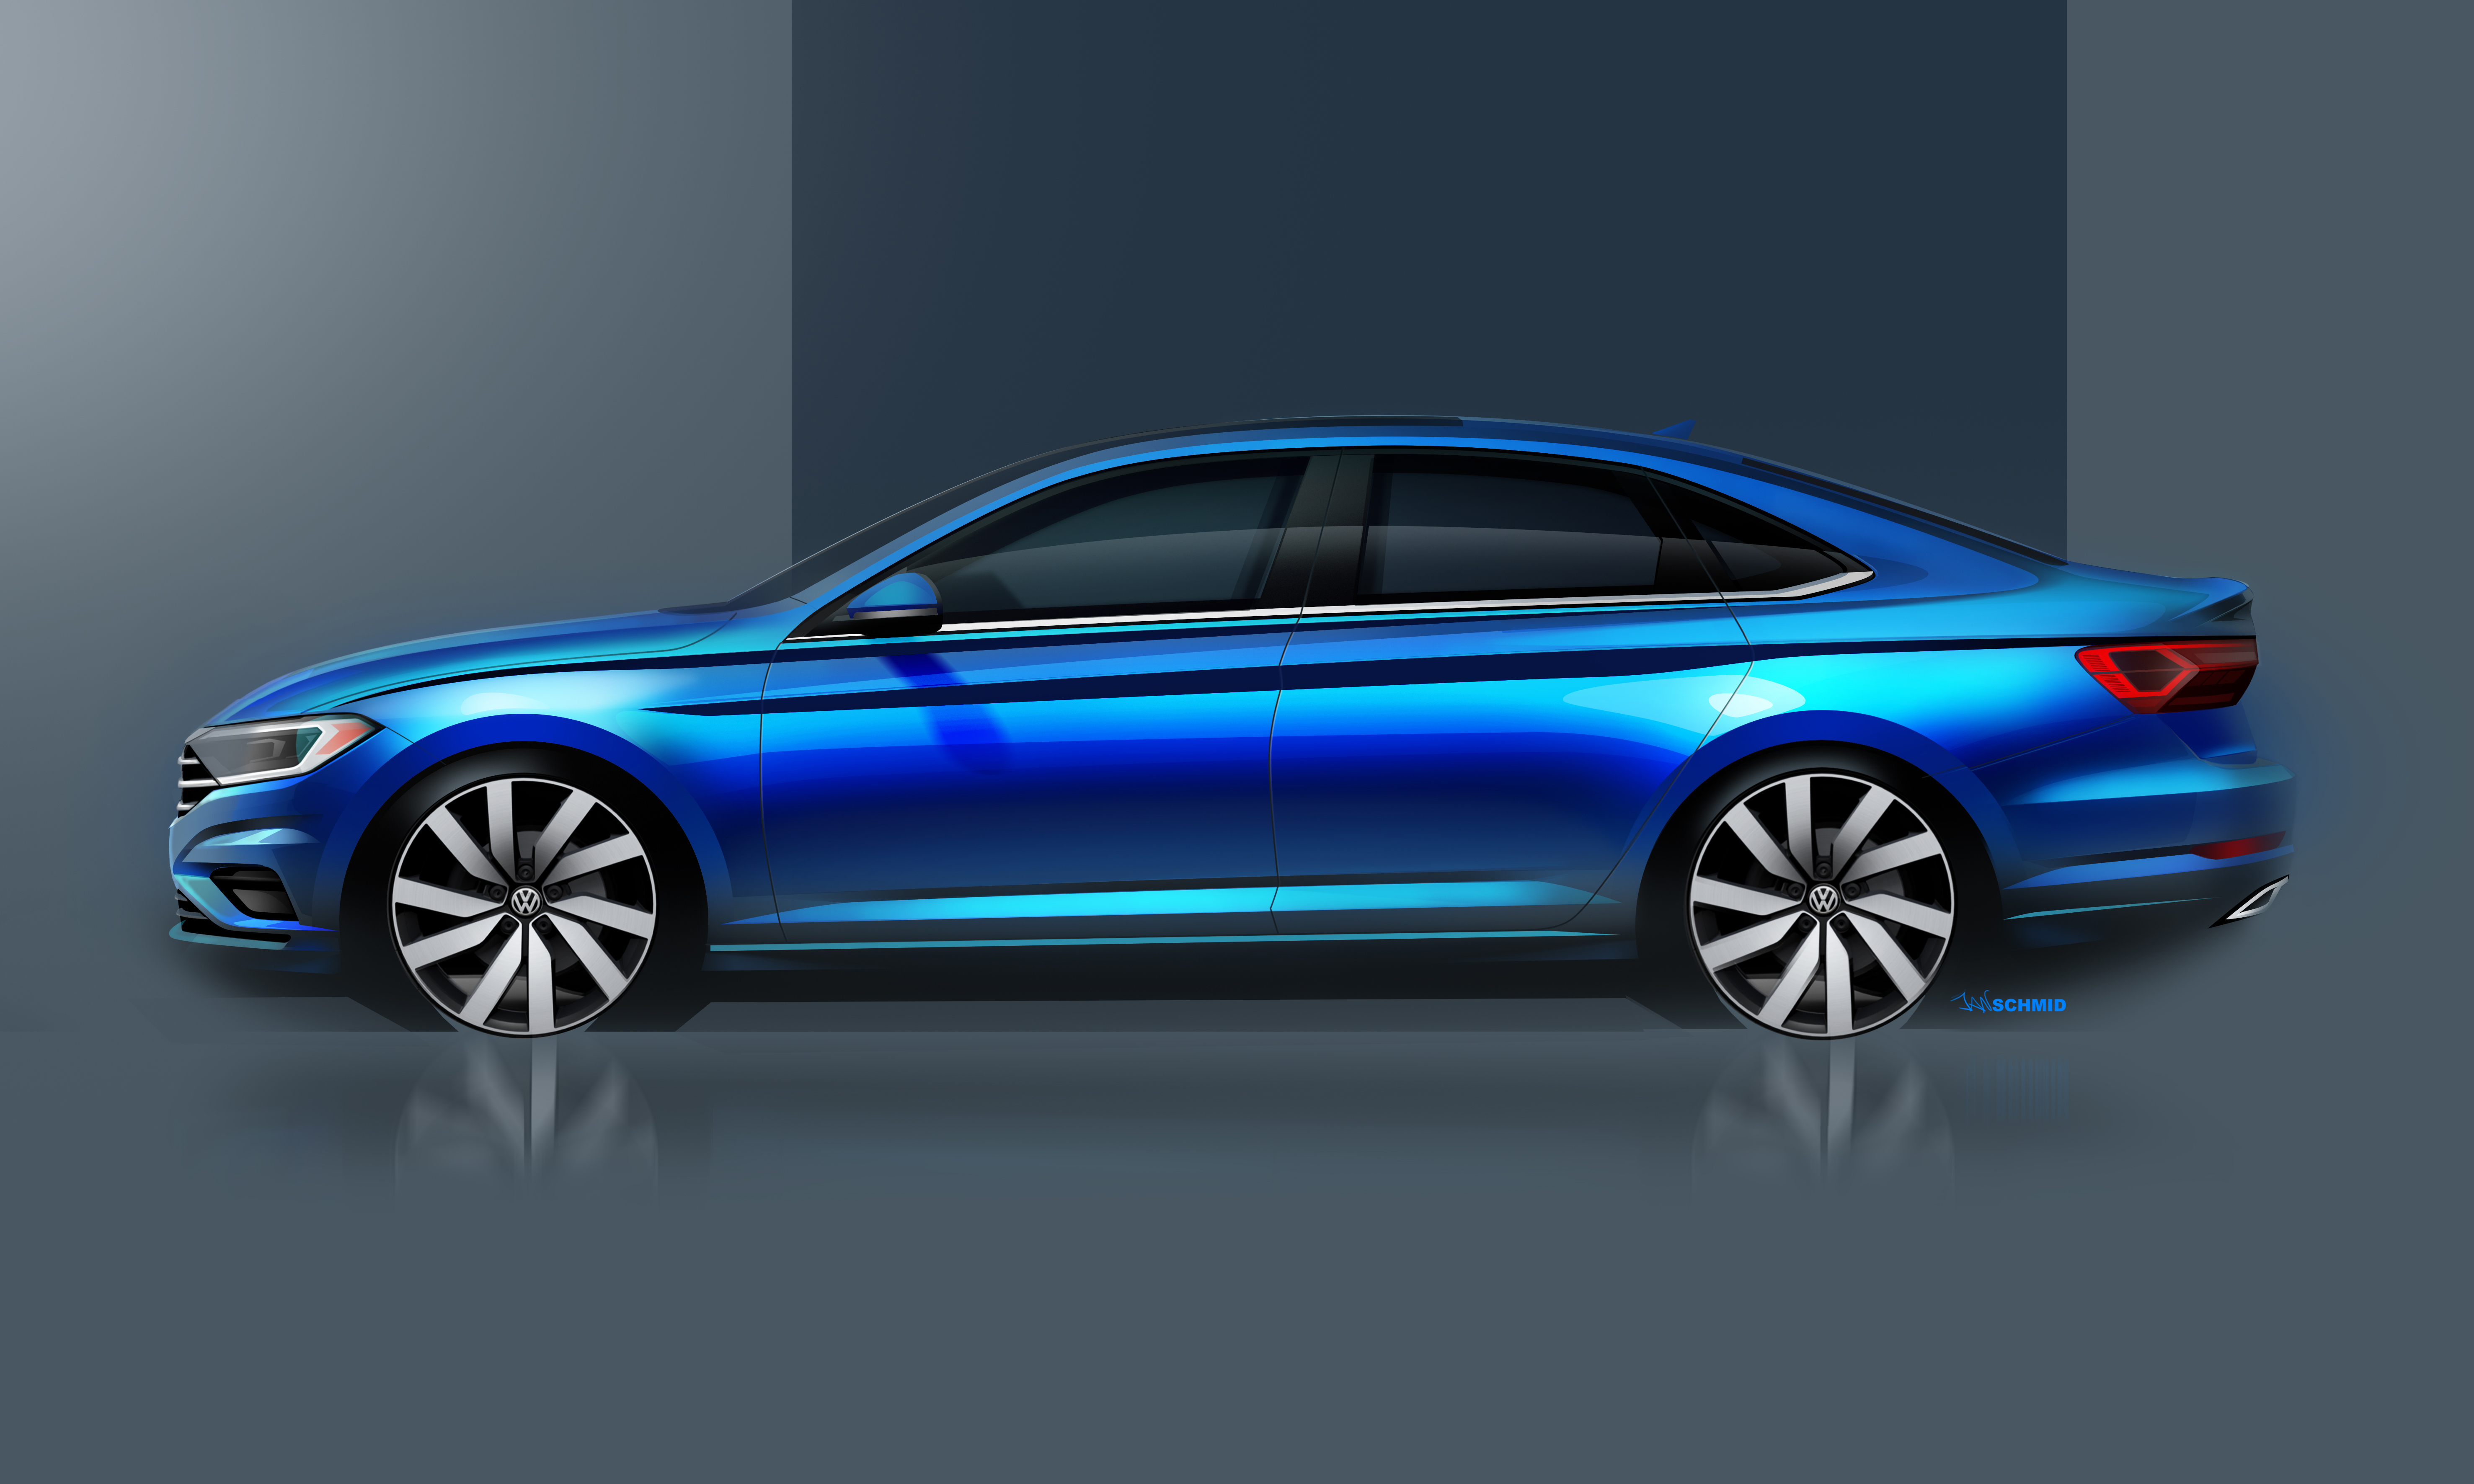 Volkswagen Teases Redesigned 2019 Jetta Ahead Of Detroit Auto Show